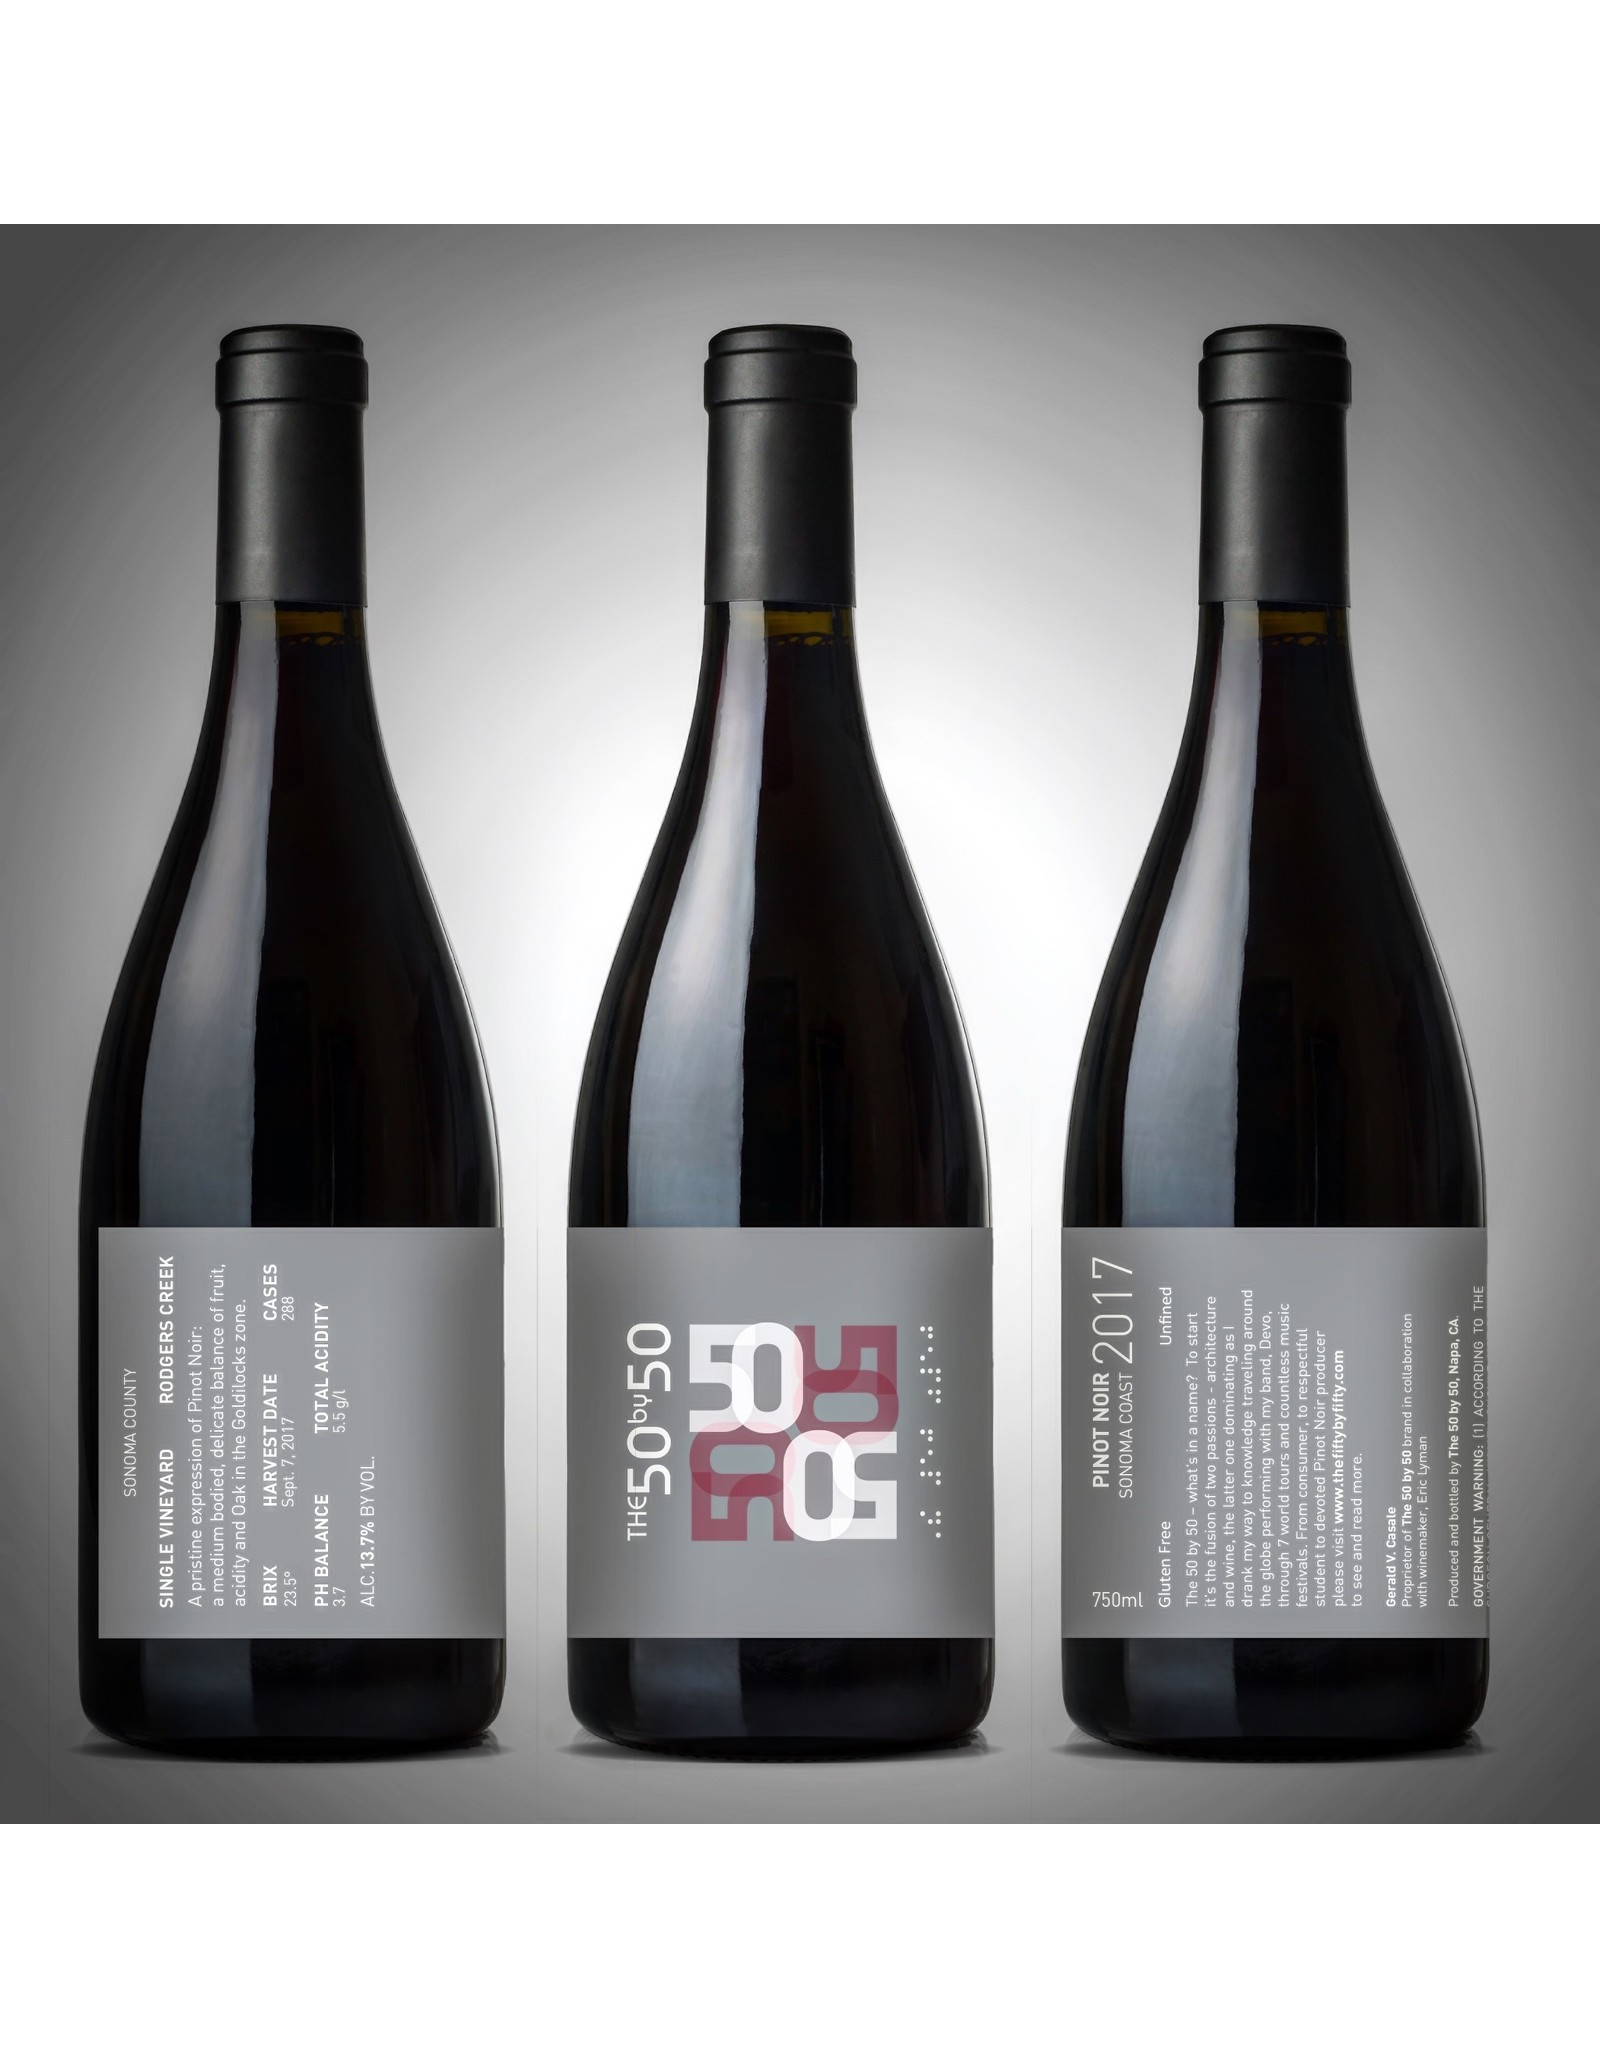 50 by 50 / Devo The 50 by 50 Wine Club FREEDOM OF CHOICE Fall 2019 Release (PN) 6 Bottle/Shipment